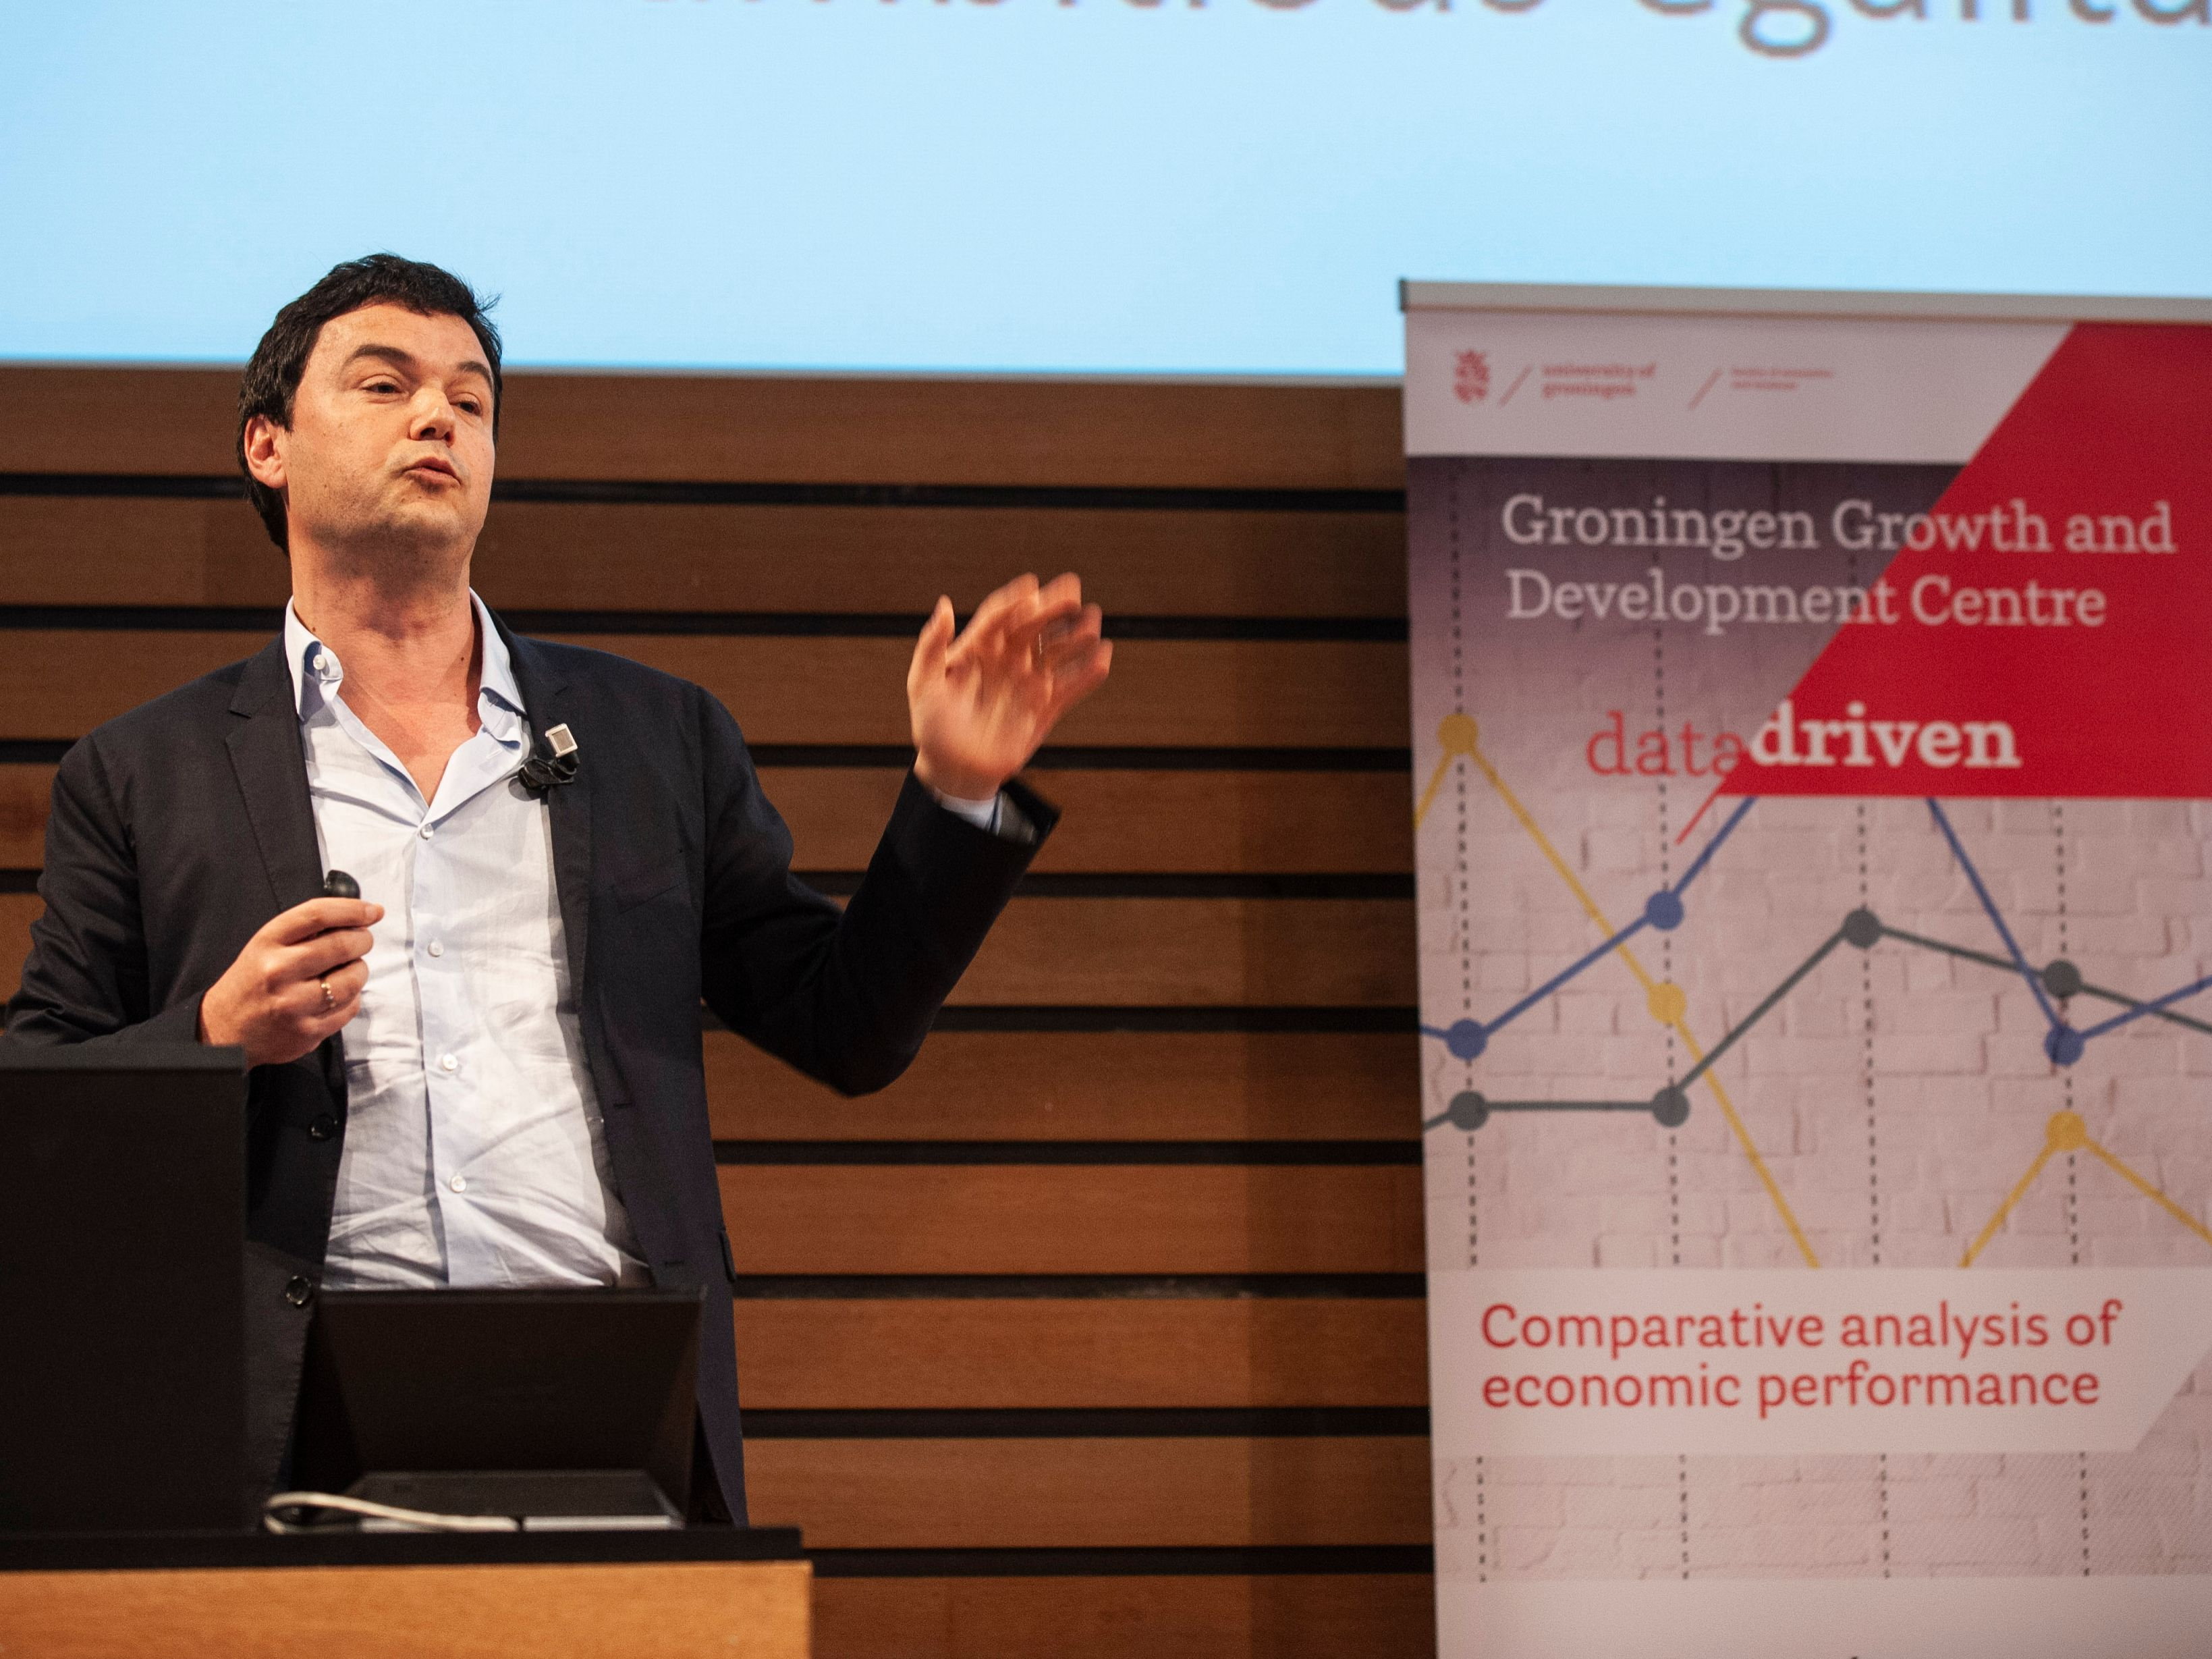 Leading economist Thomas Piketty addressing students and staff of the University of Groningen in May.